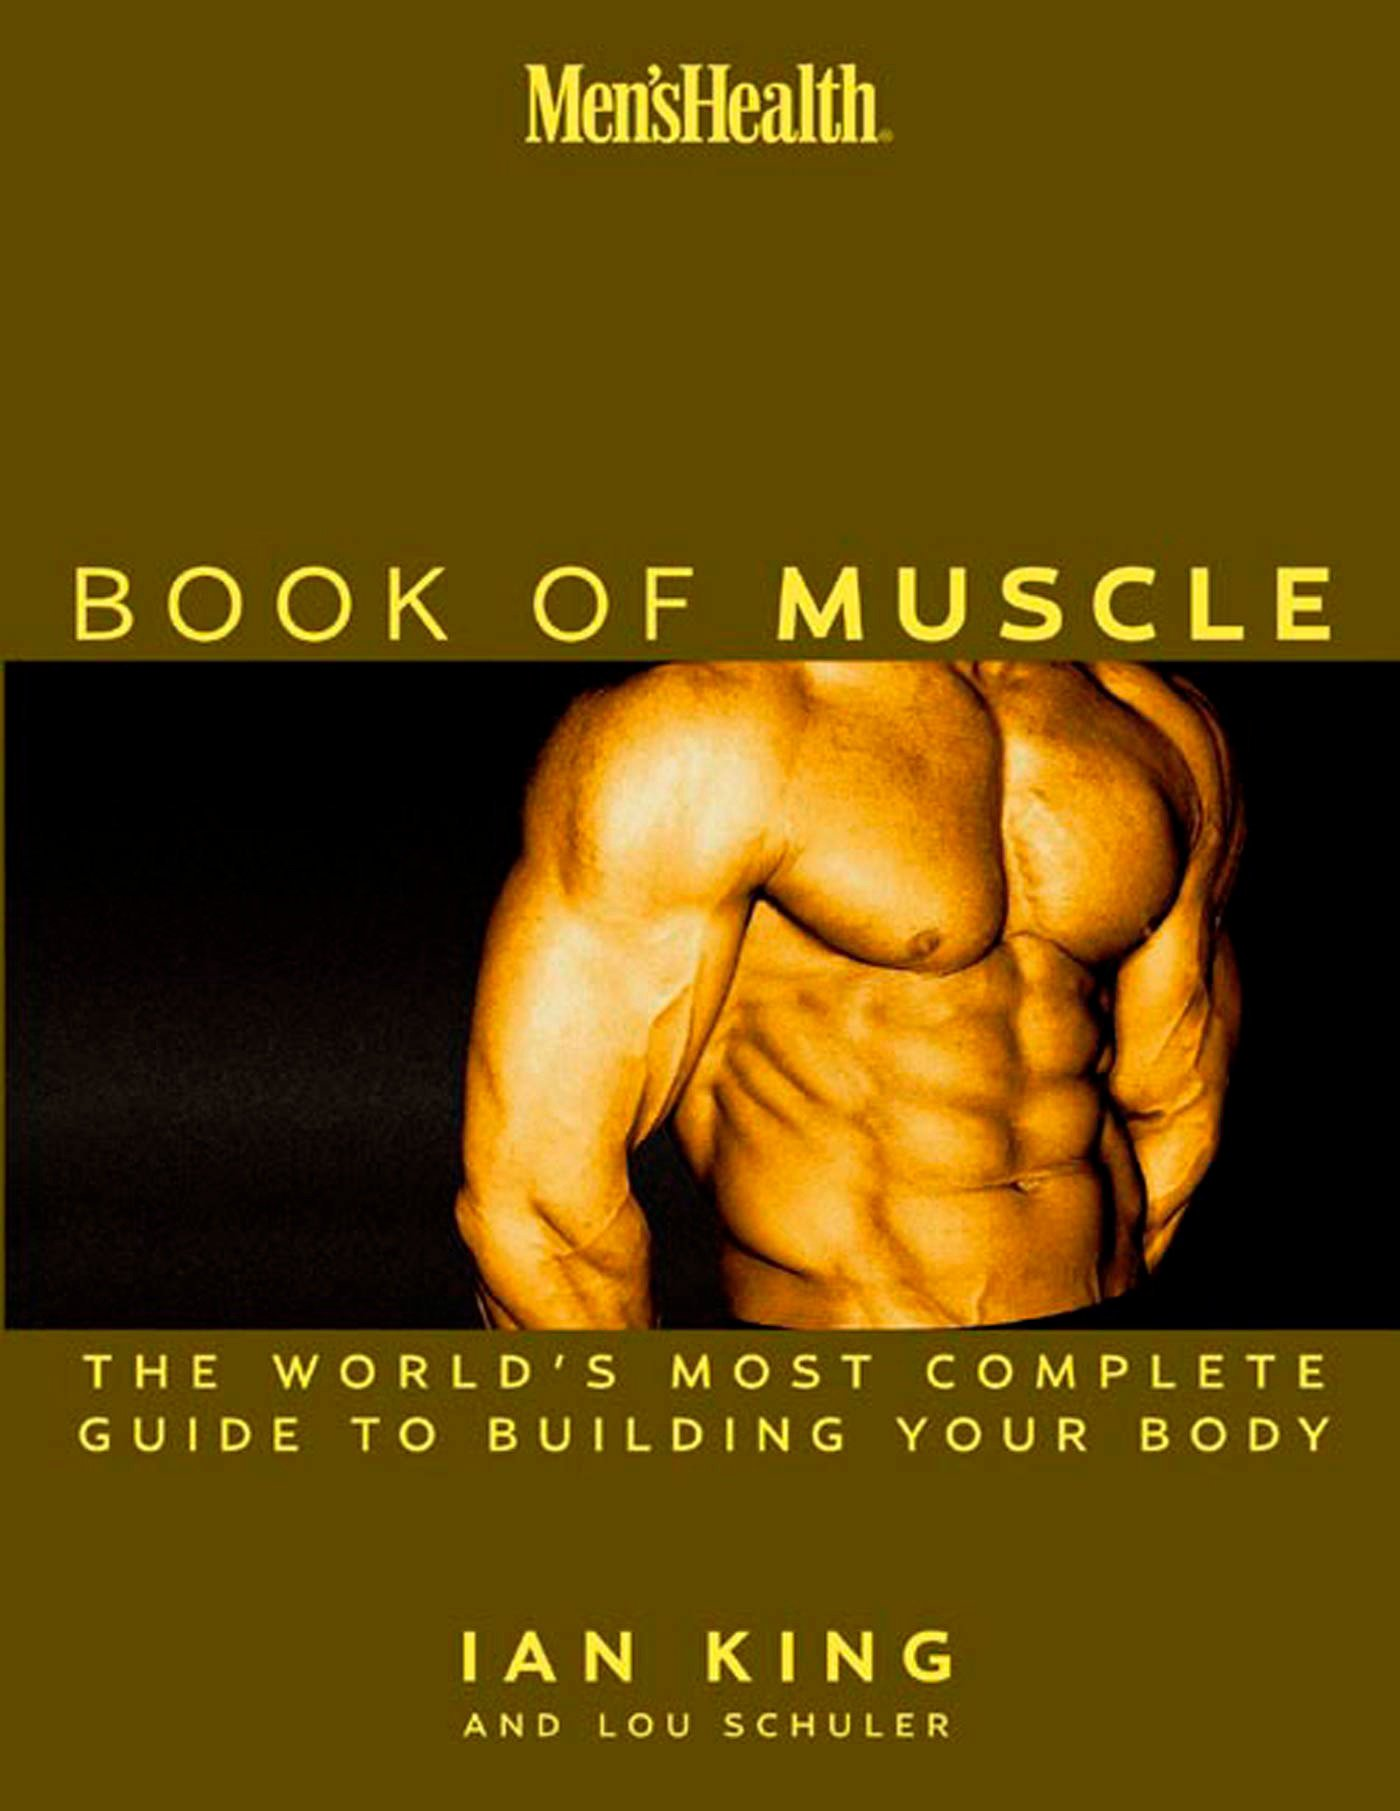 Mens Health The Book Of Muscle Worlds Most Authoritative One Healthy Breakdown Do This Circuit A Few Times Week For Strong Guide To Building Your Body Lou Schuler 9781579547691 Books